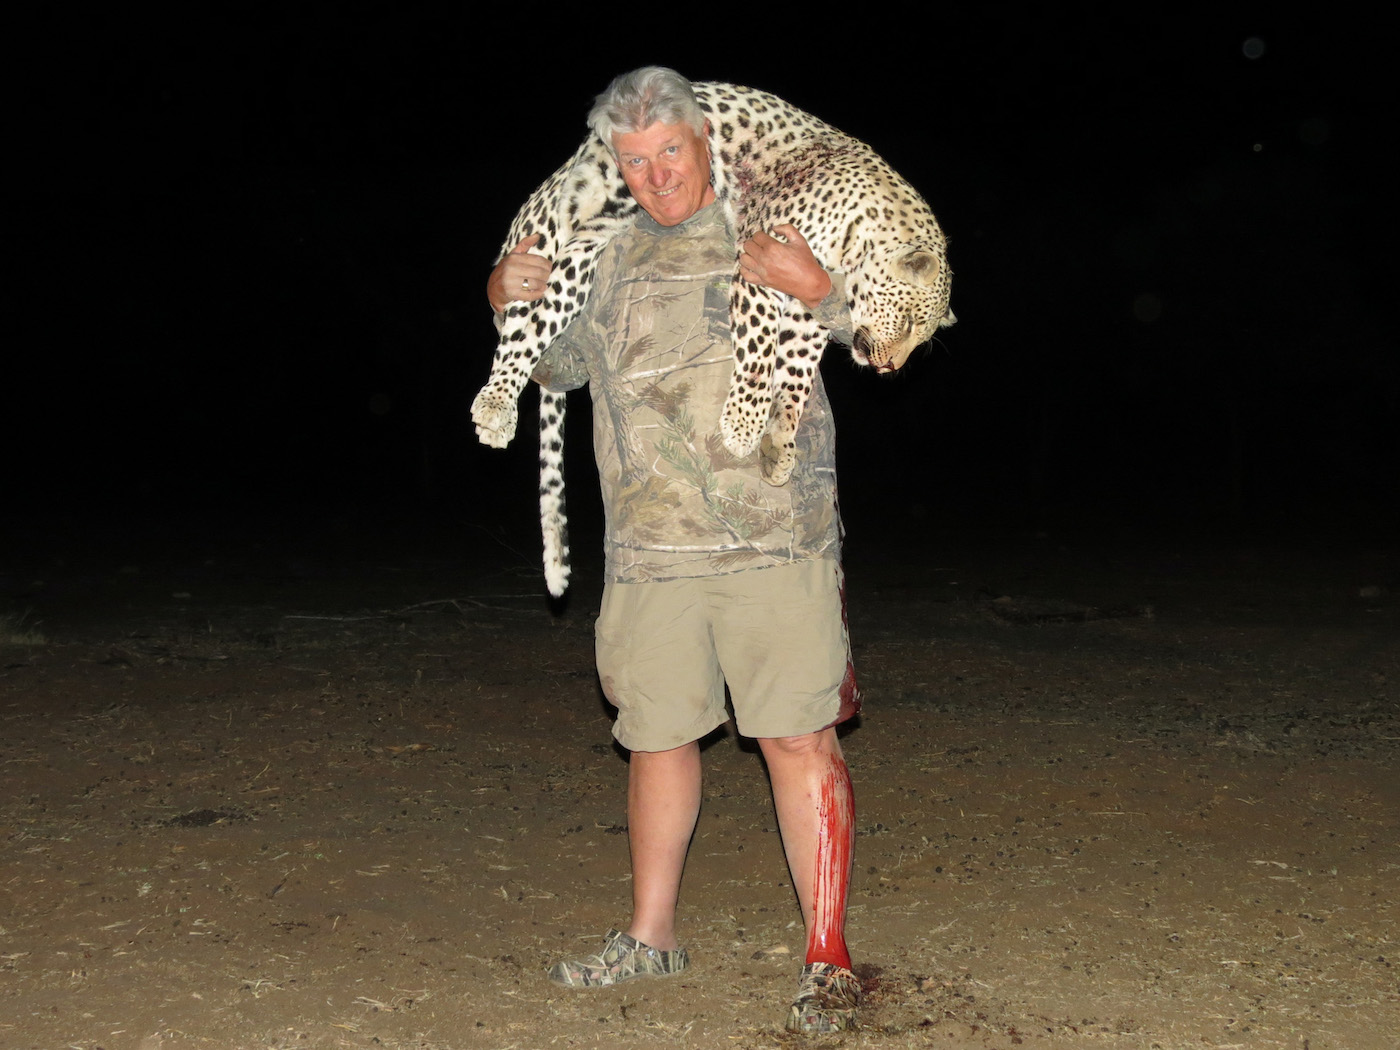 hunting-namibia-leopard